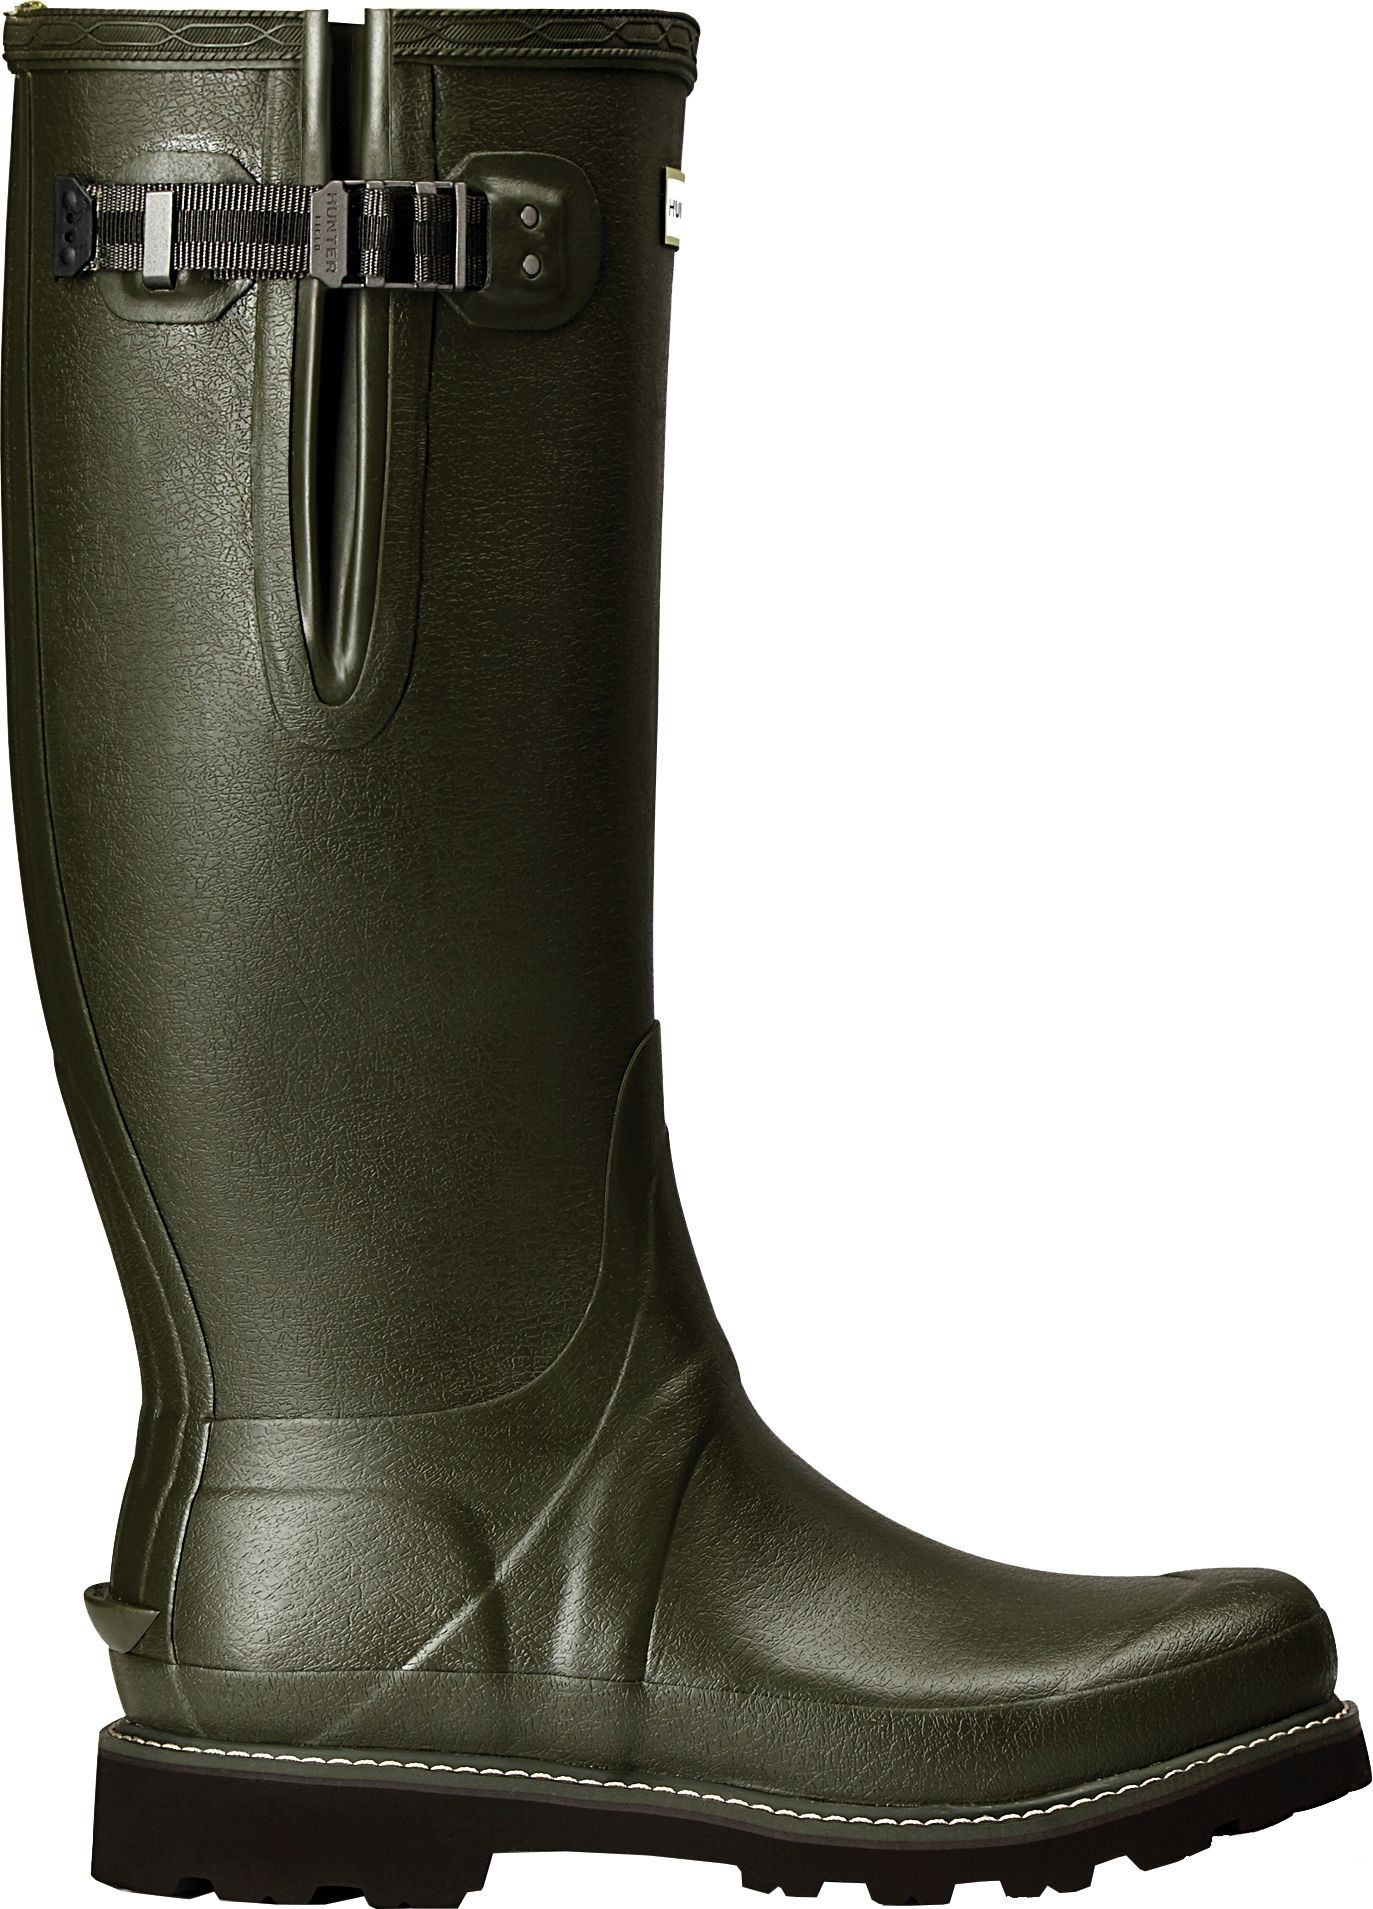 Hunter Boots Women's Balmoral Poly-Lined Rain Boots| DICK'S ...